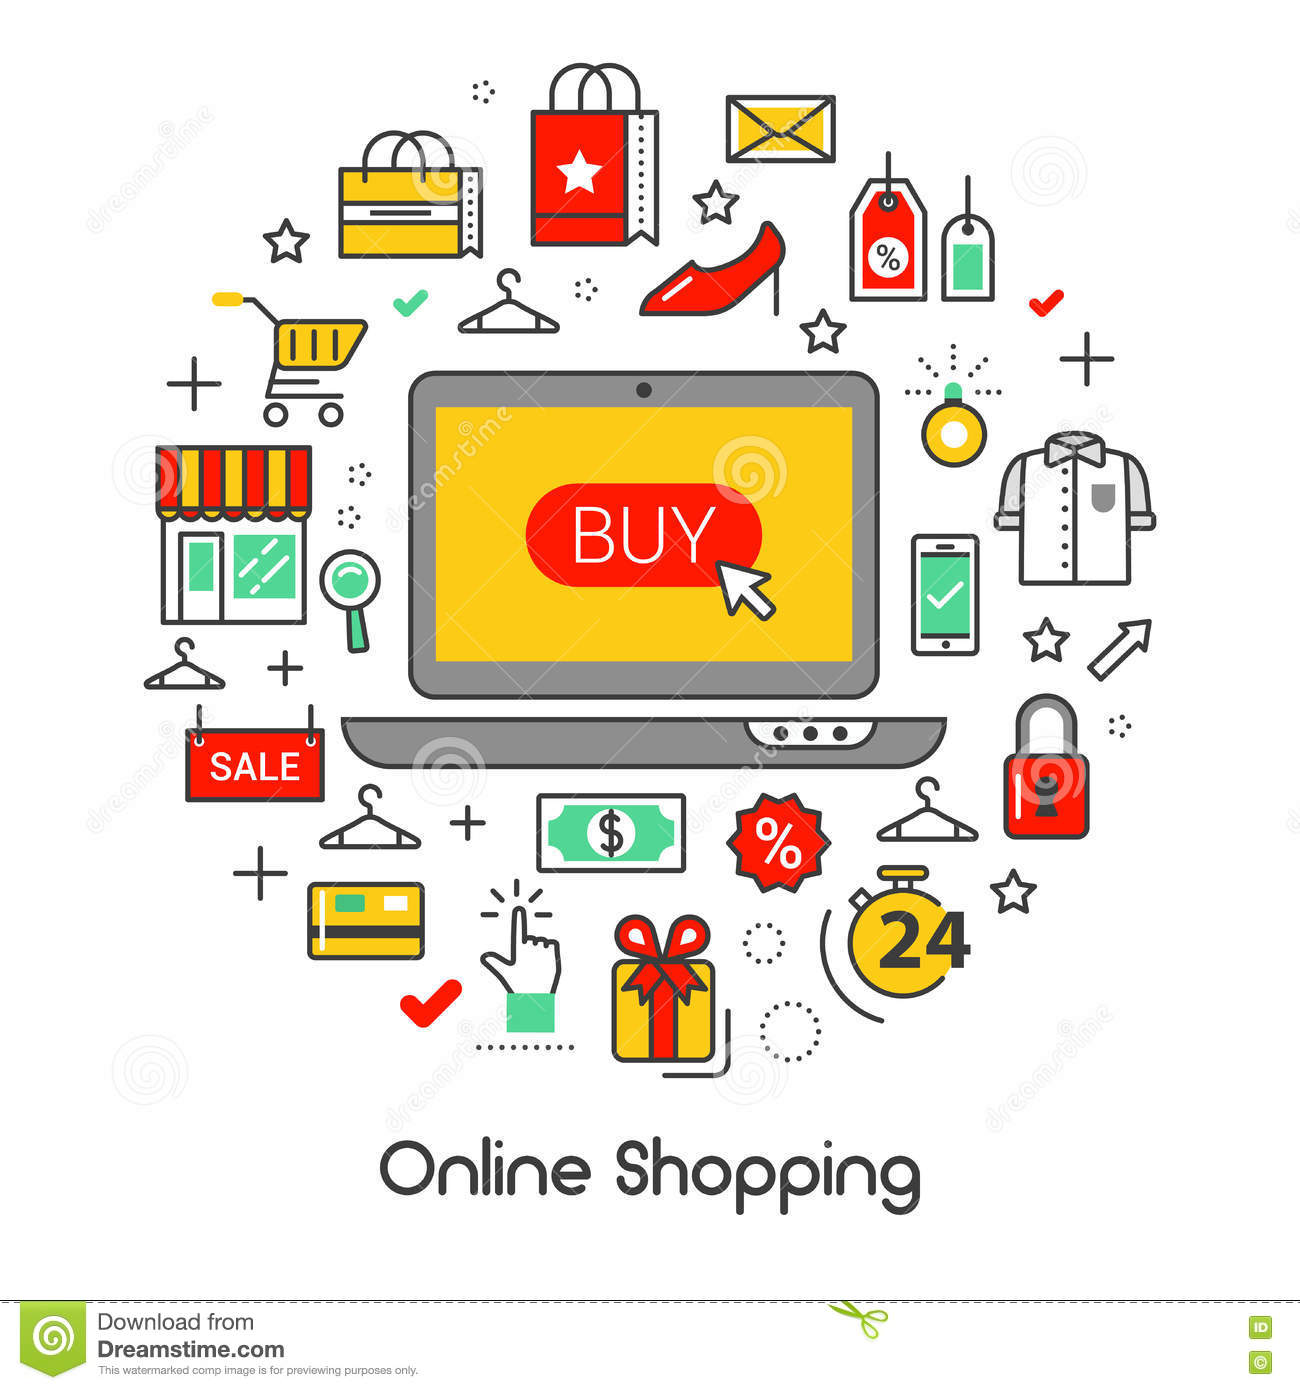 online-shopping-line-art-thin-icons-set-laptop-products-vector-77816027.jpg